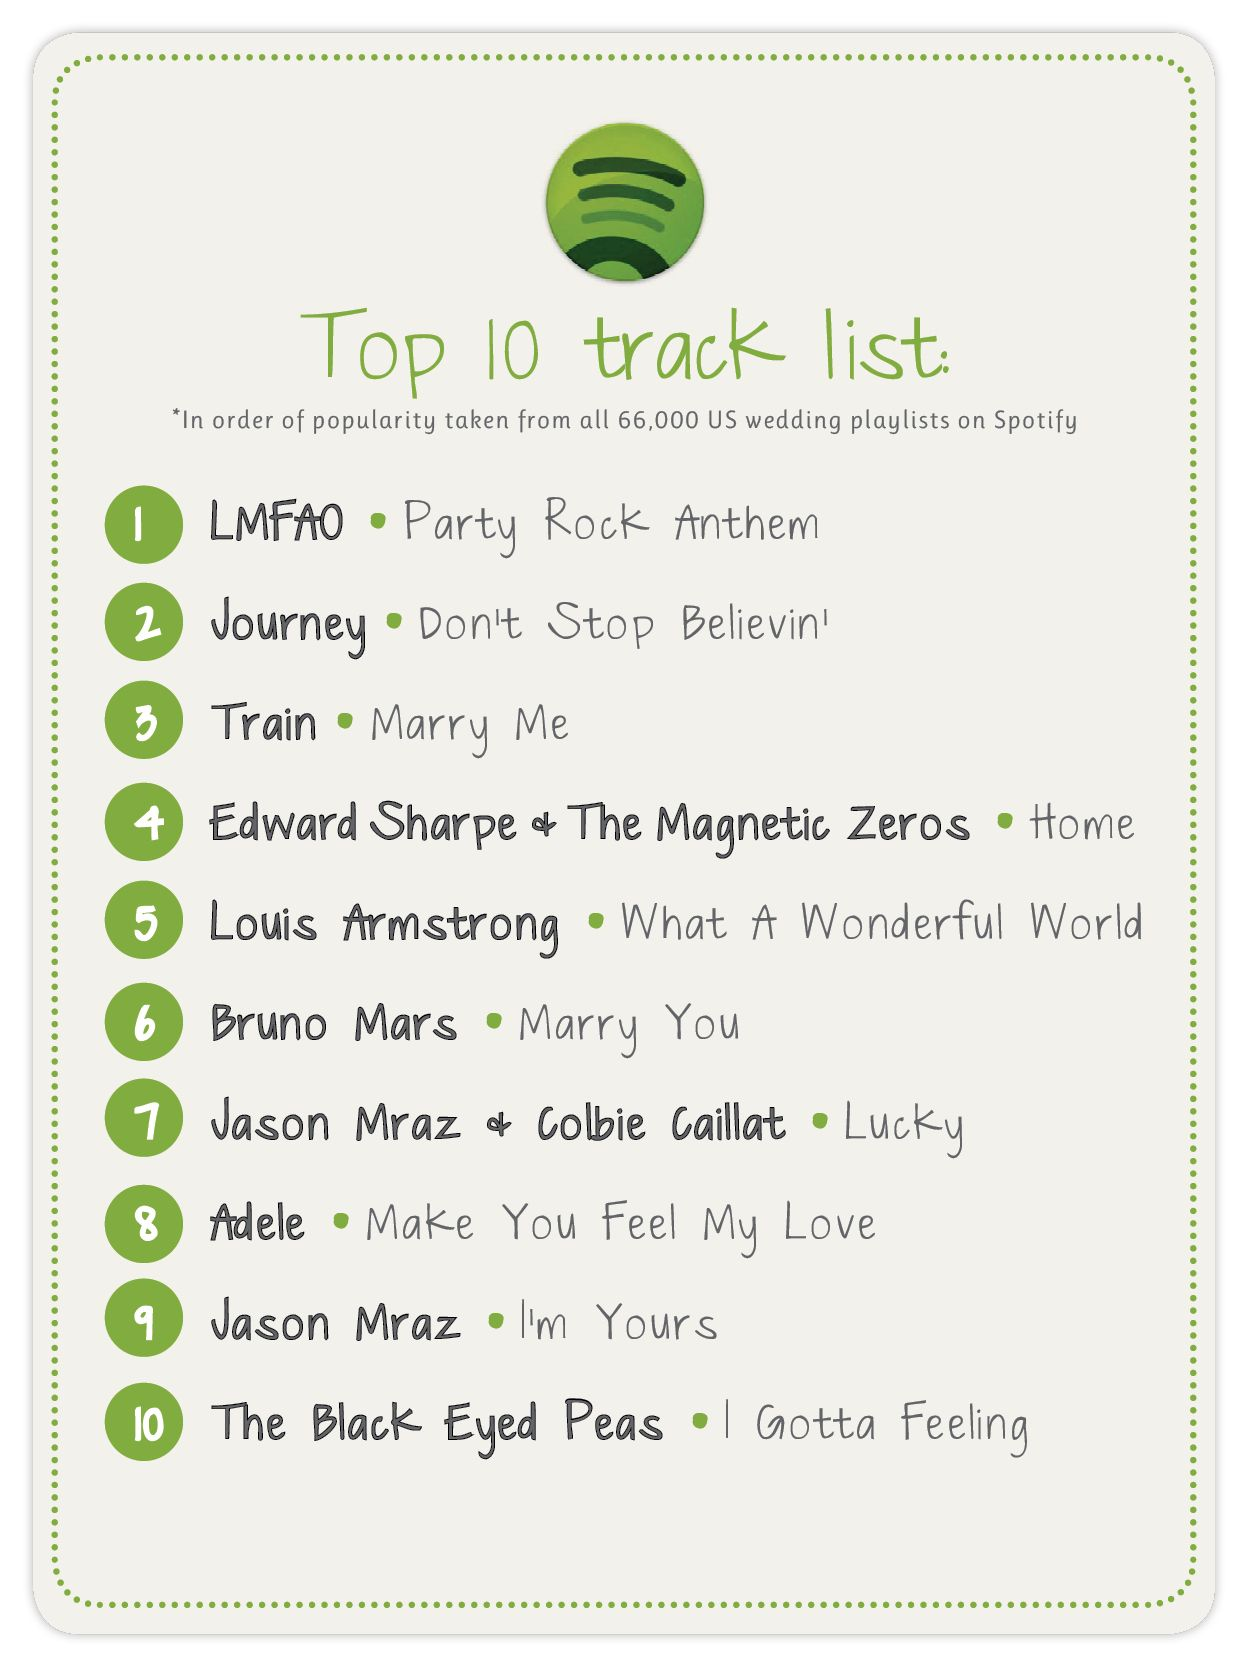 Top 10 Wedding Reception Songs According To Spotify The